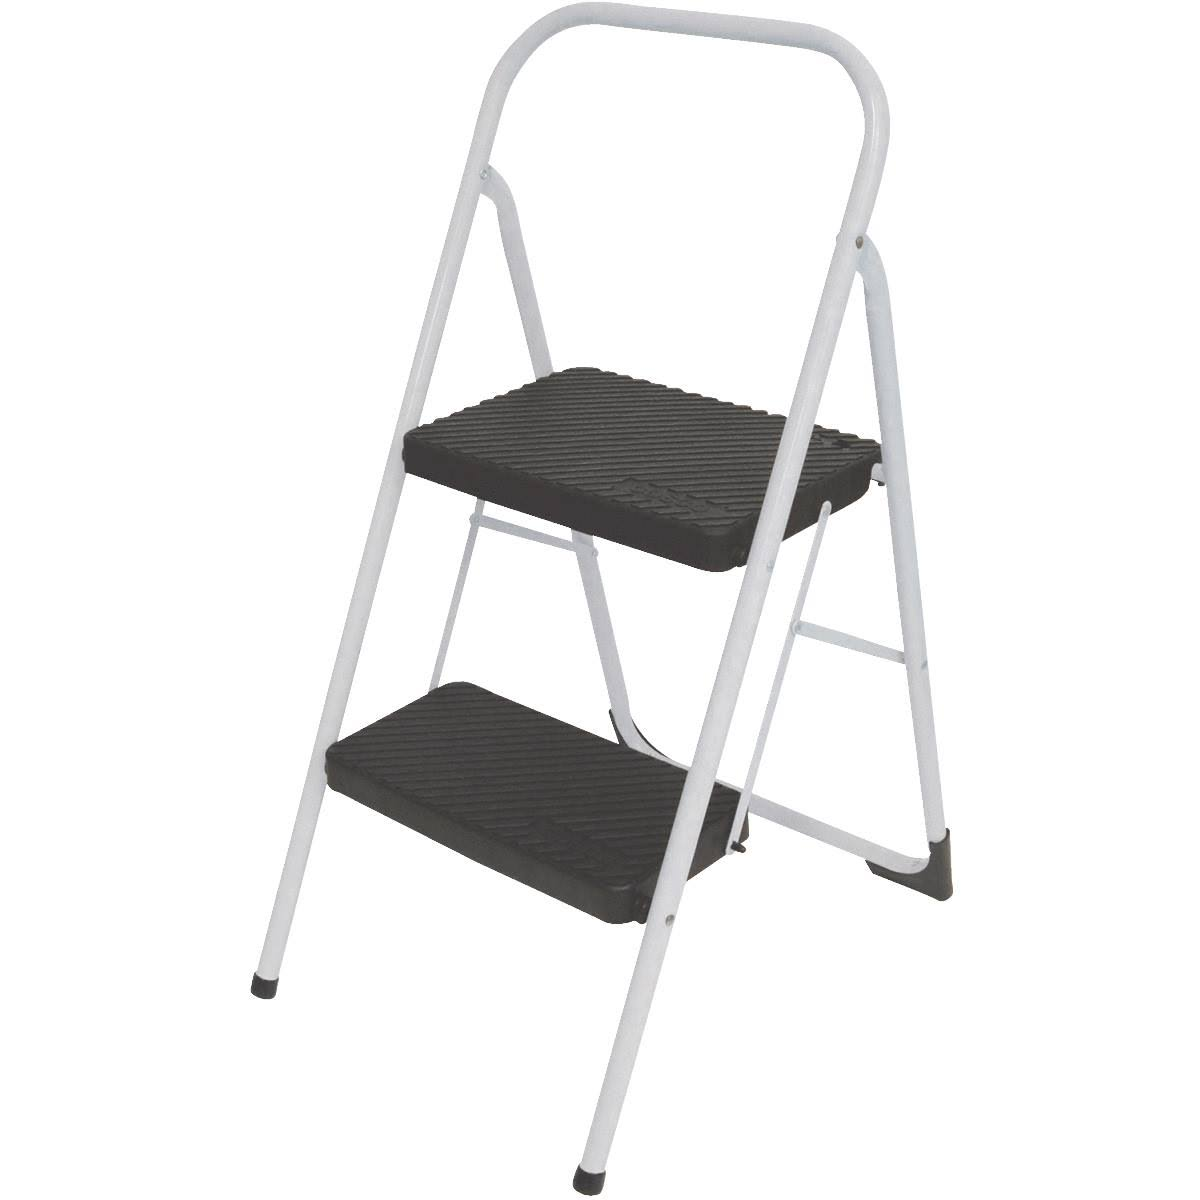 Cosco Big Step Stool - Cool Grey, 2 Step